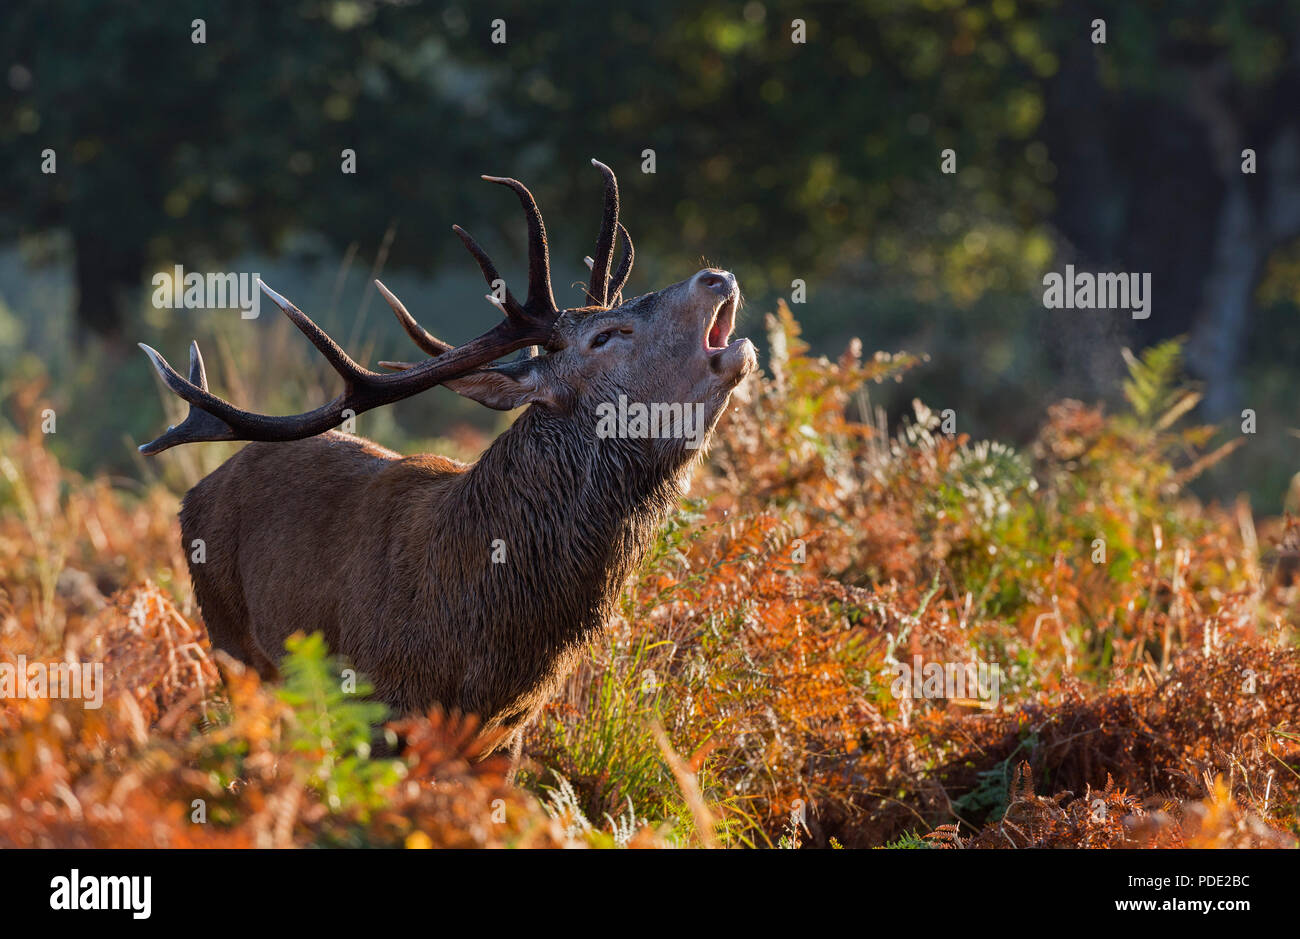 Red Deer Stag roaring Richmond Park UK - Stock Image